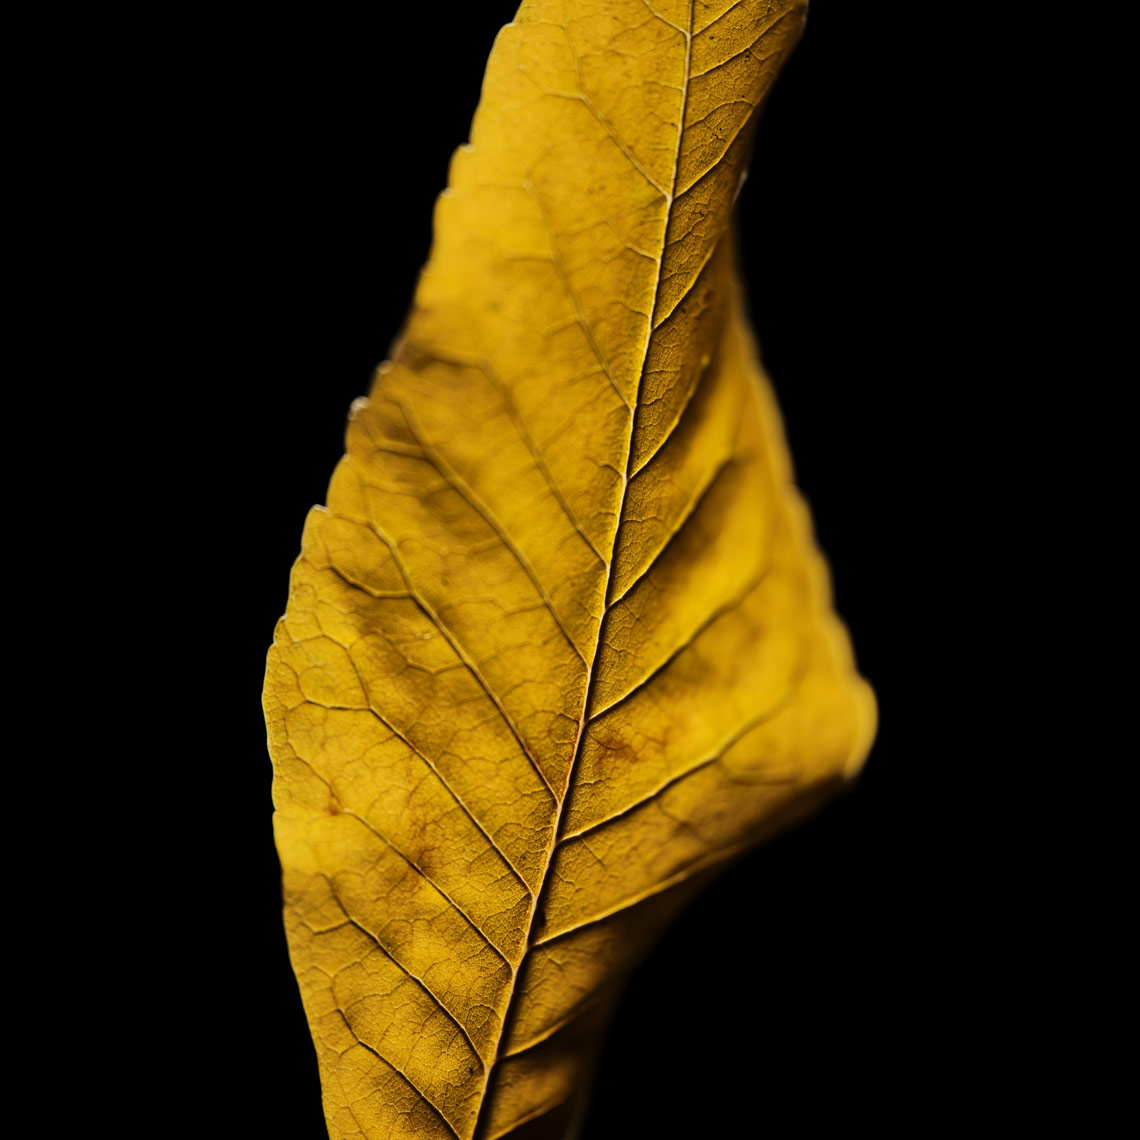 LEAVES-TEST-377_1